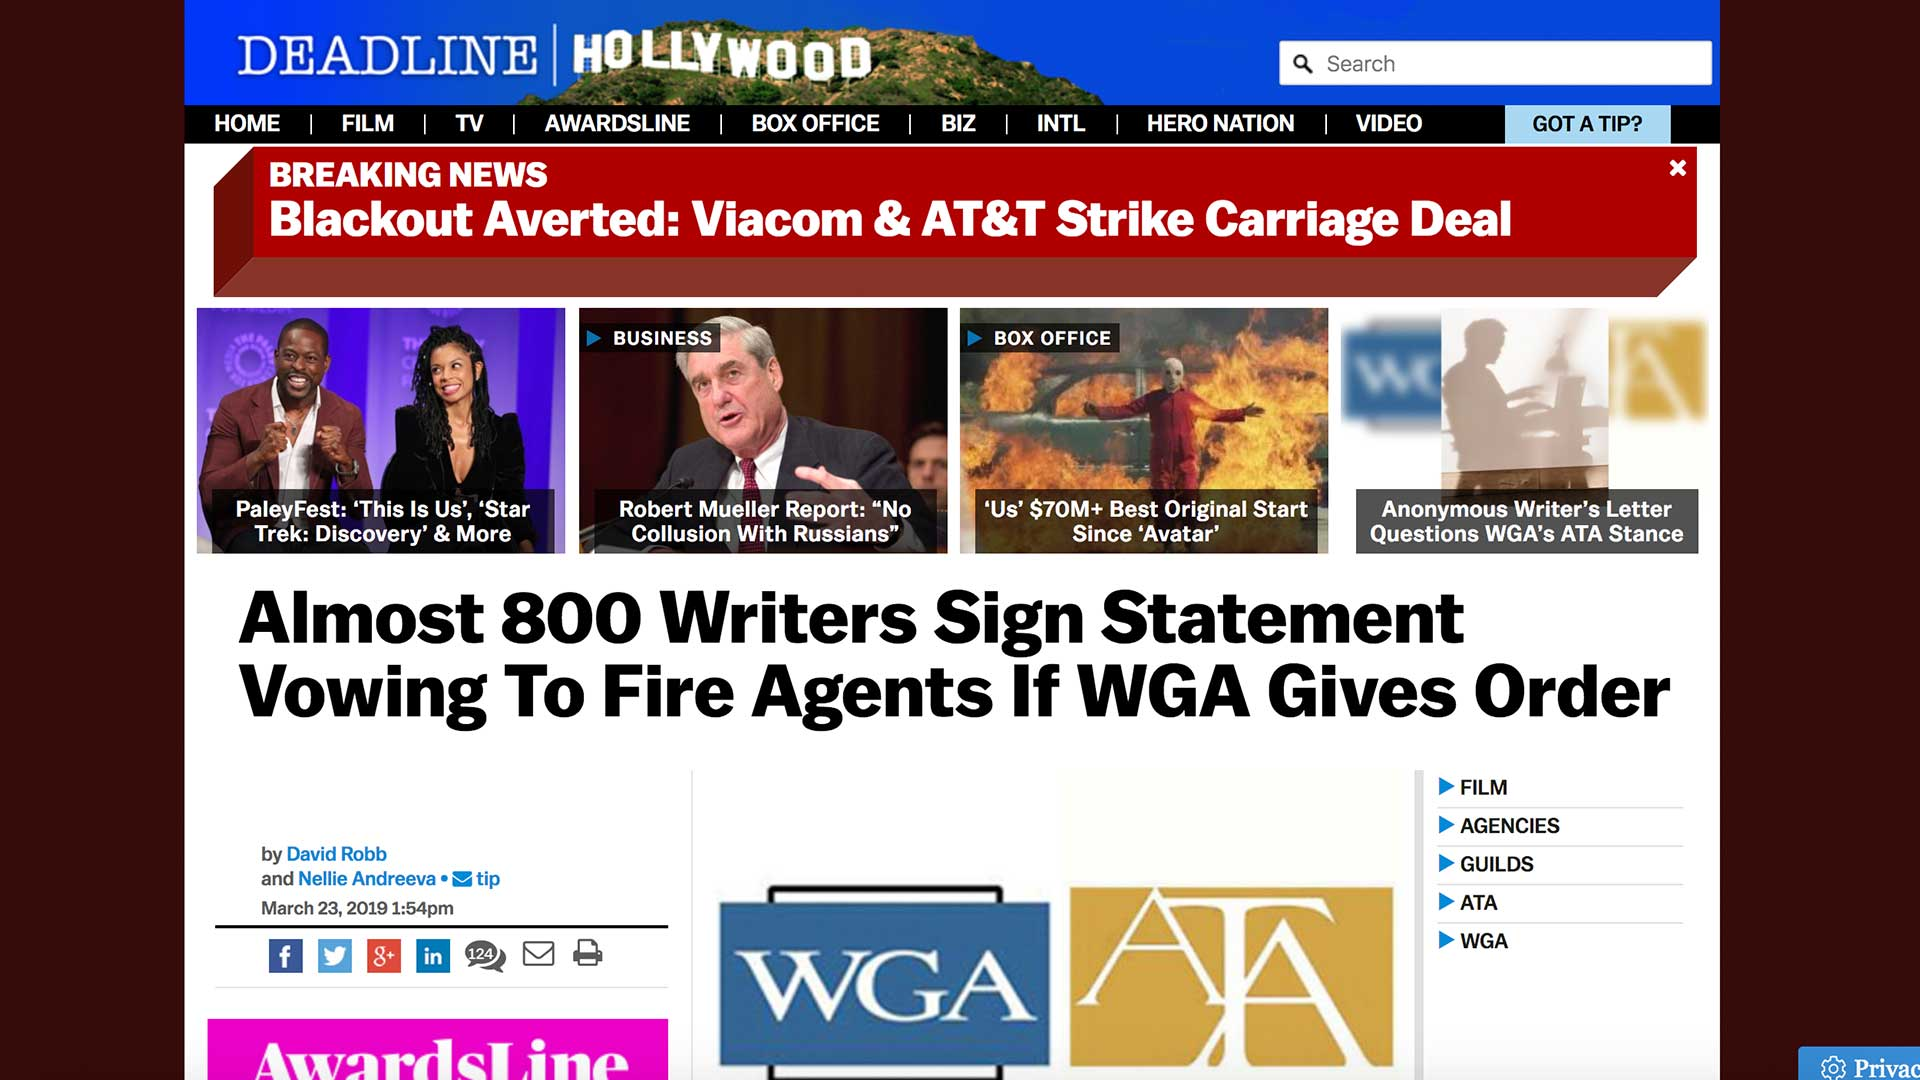 Fairness Rocks News Almost 800 Writers Sign Statement Vowing To Fire Agents If WGA Gives Order